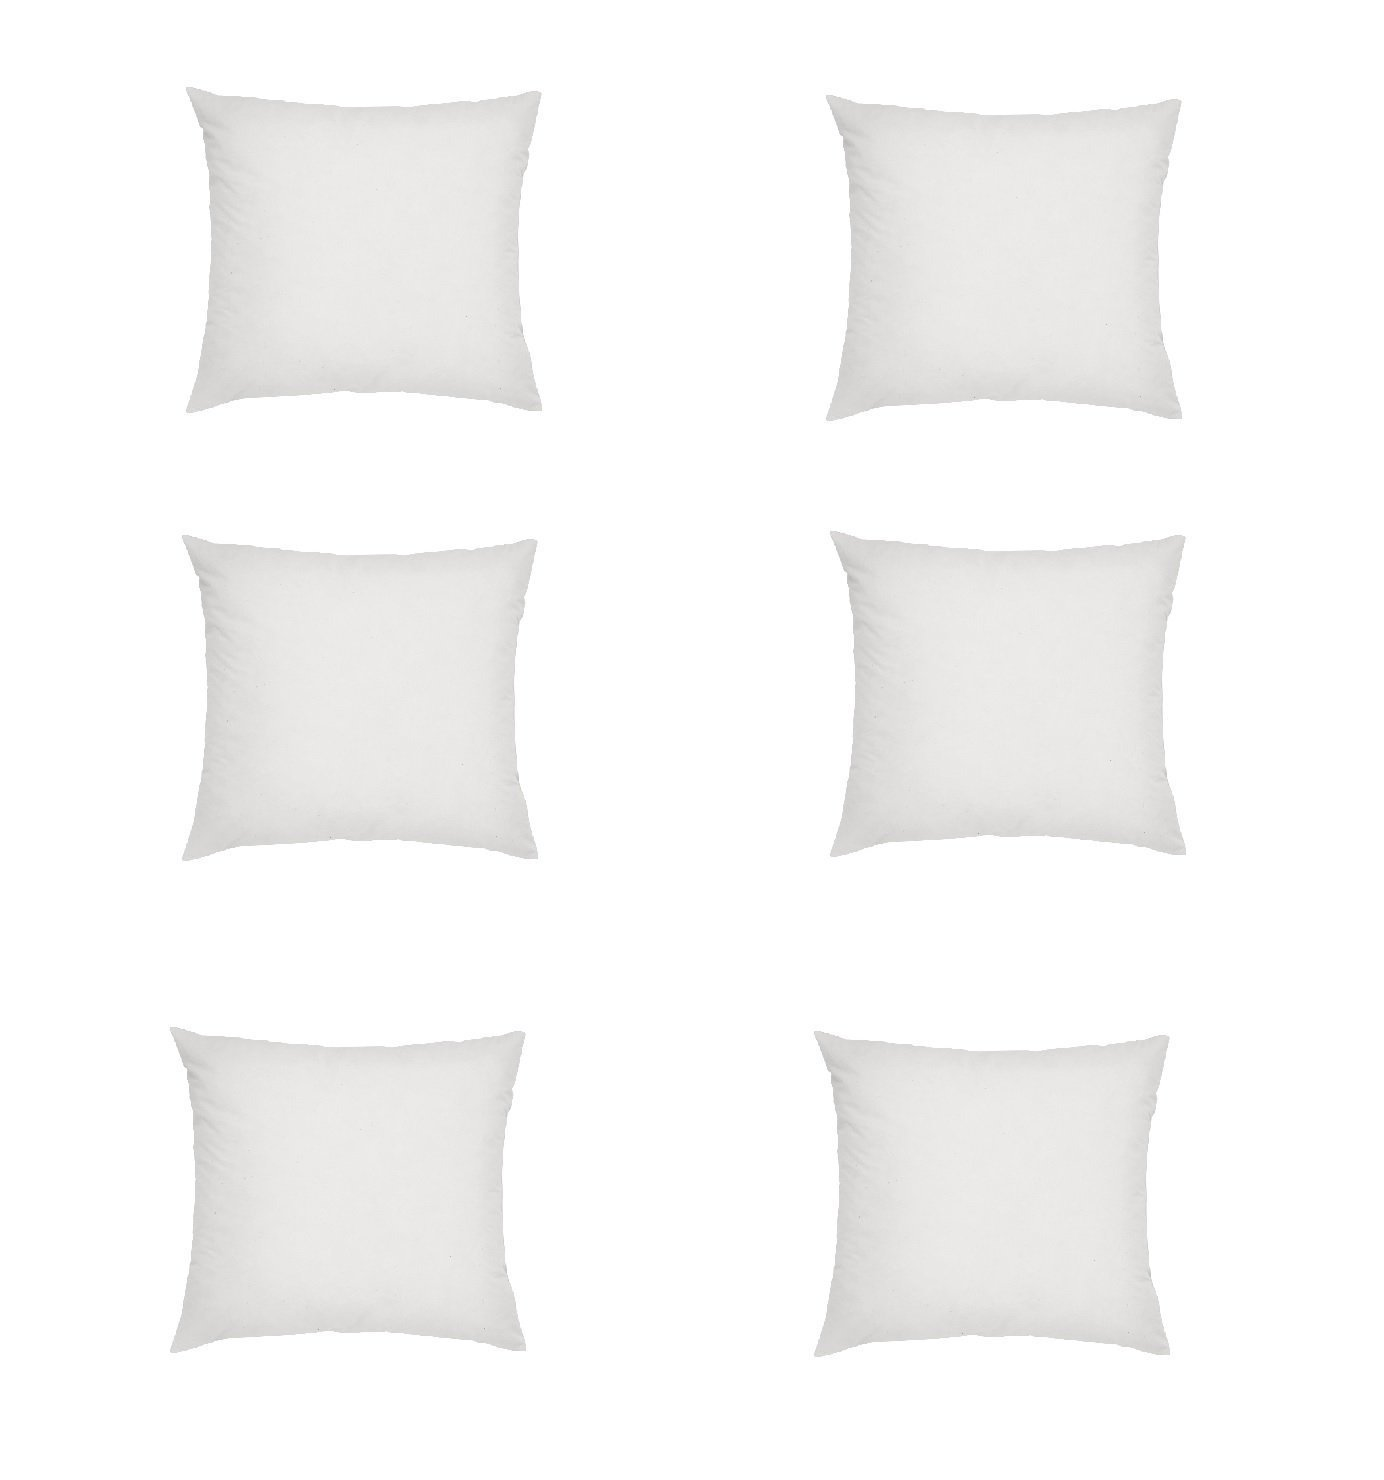 Web Linens Inc - Six Square Polyester Pillow Inserts with Six Zippered Covers - 36 x 36 Inch by Web Linens Inc